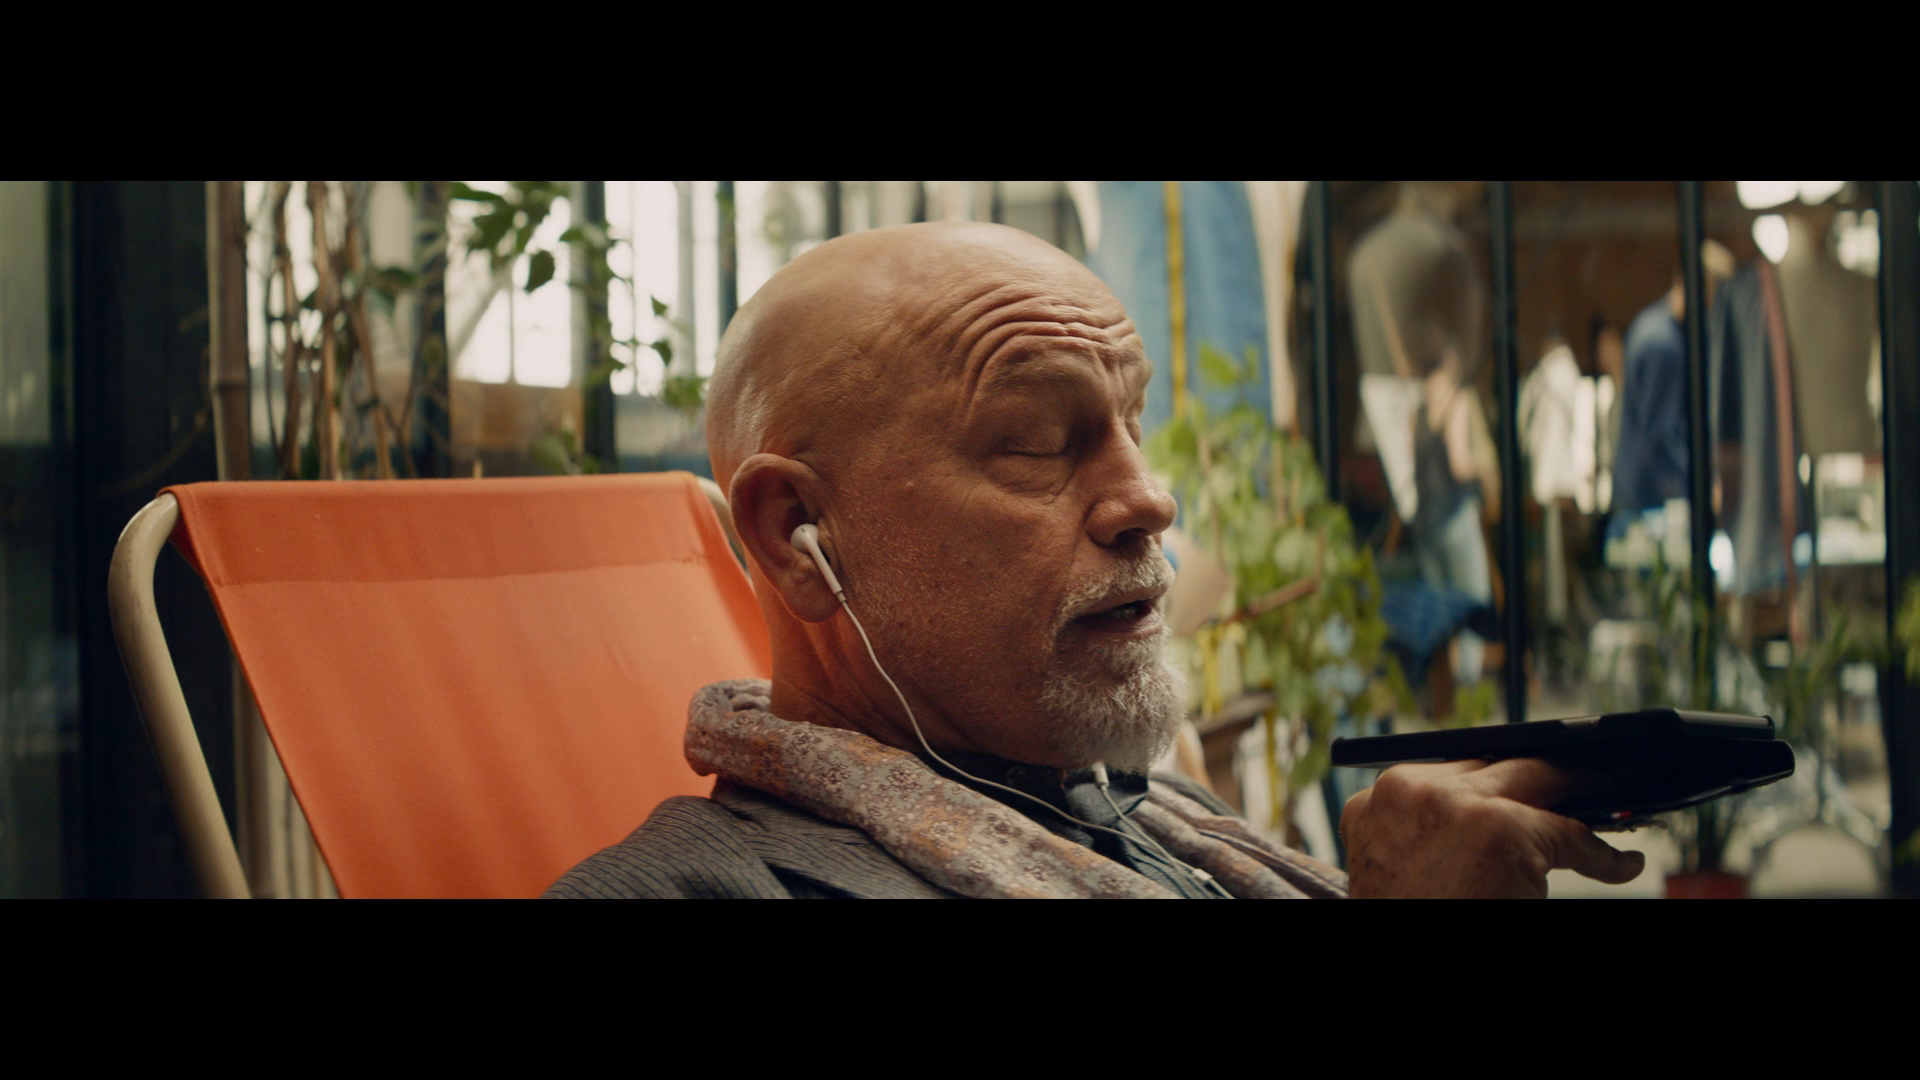 Thumbnail for Calling JohnMalkovich.com